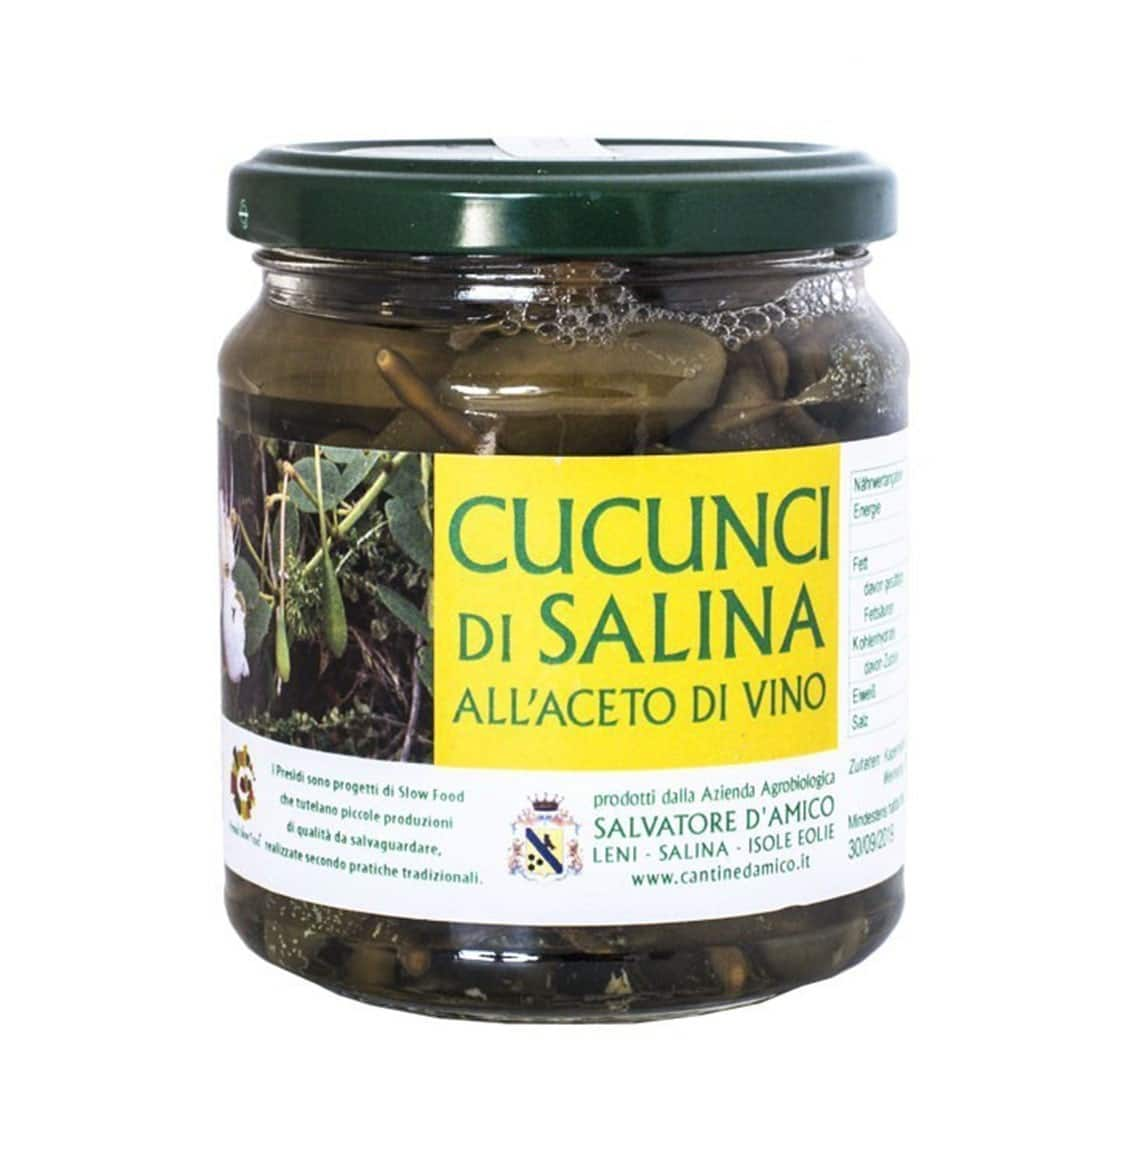 Salina Cucunci in Wine Vinegar